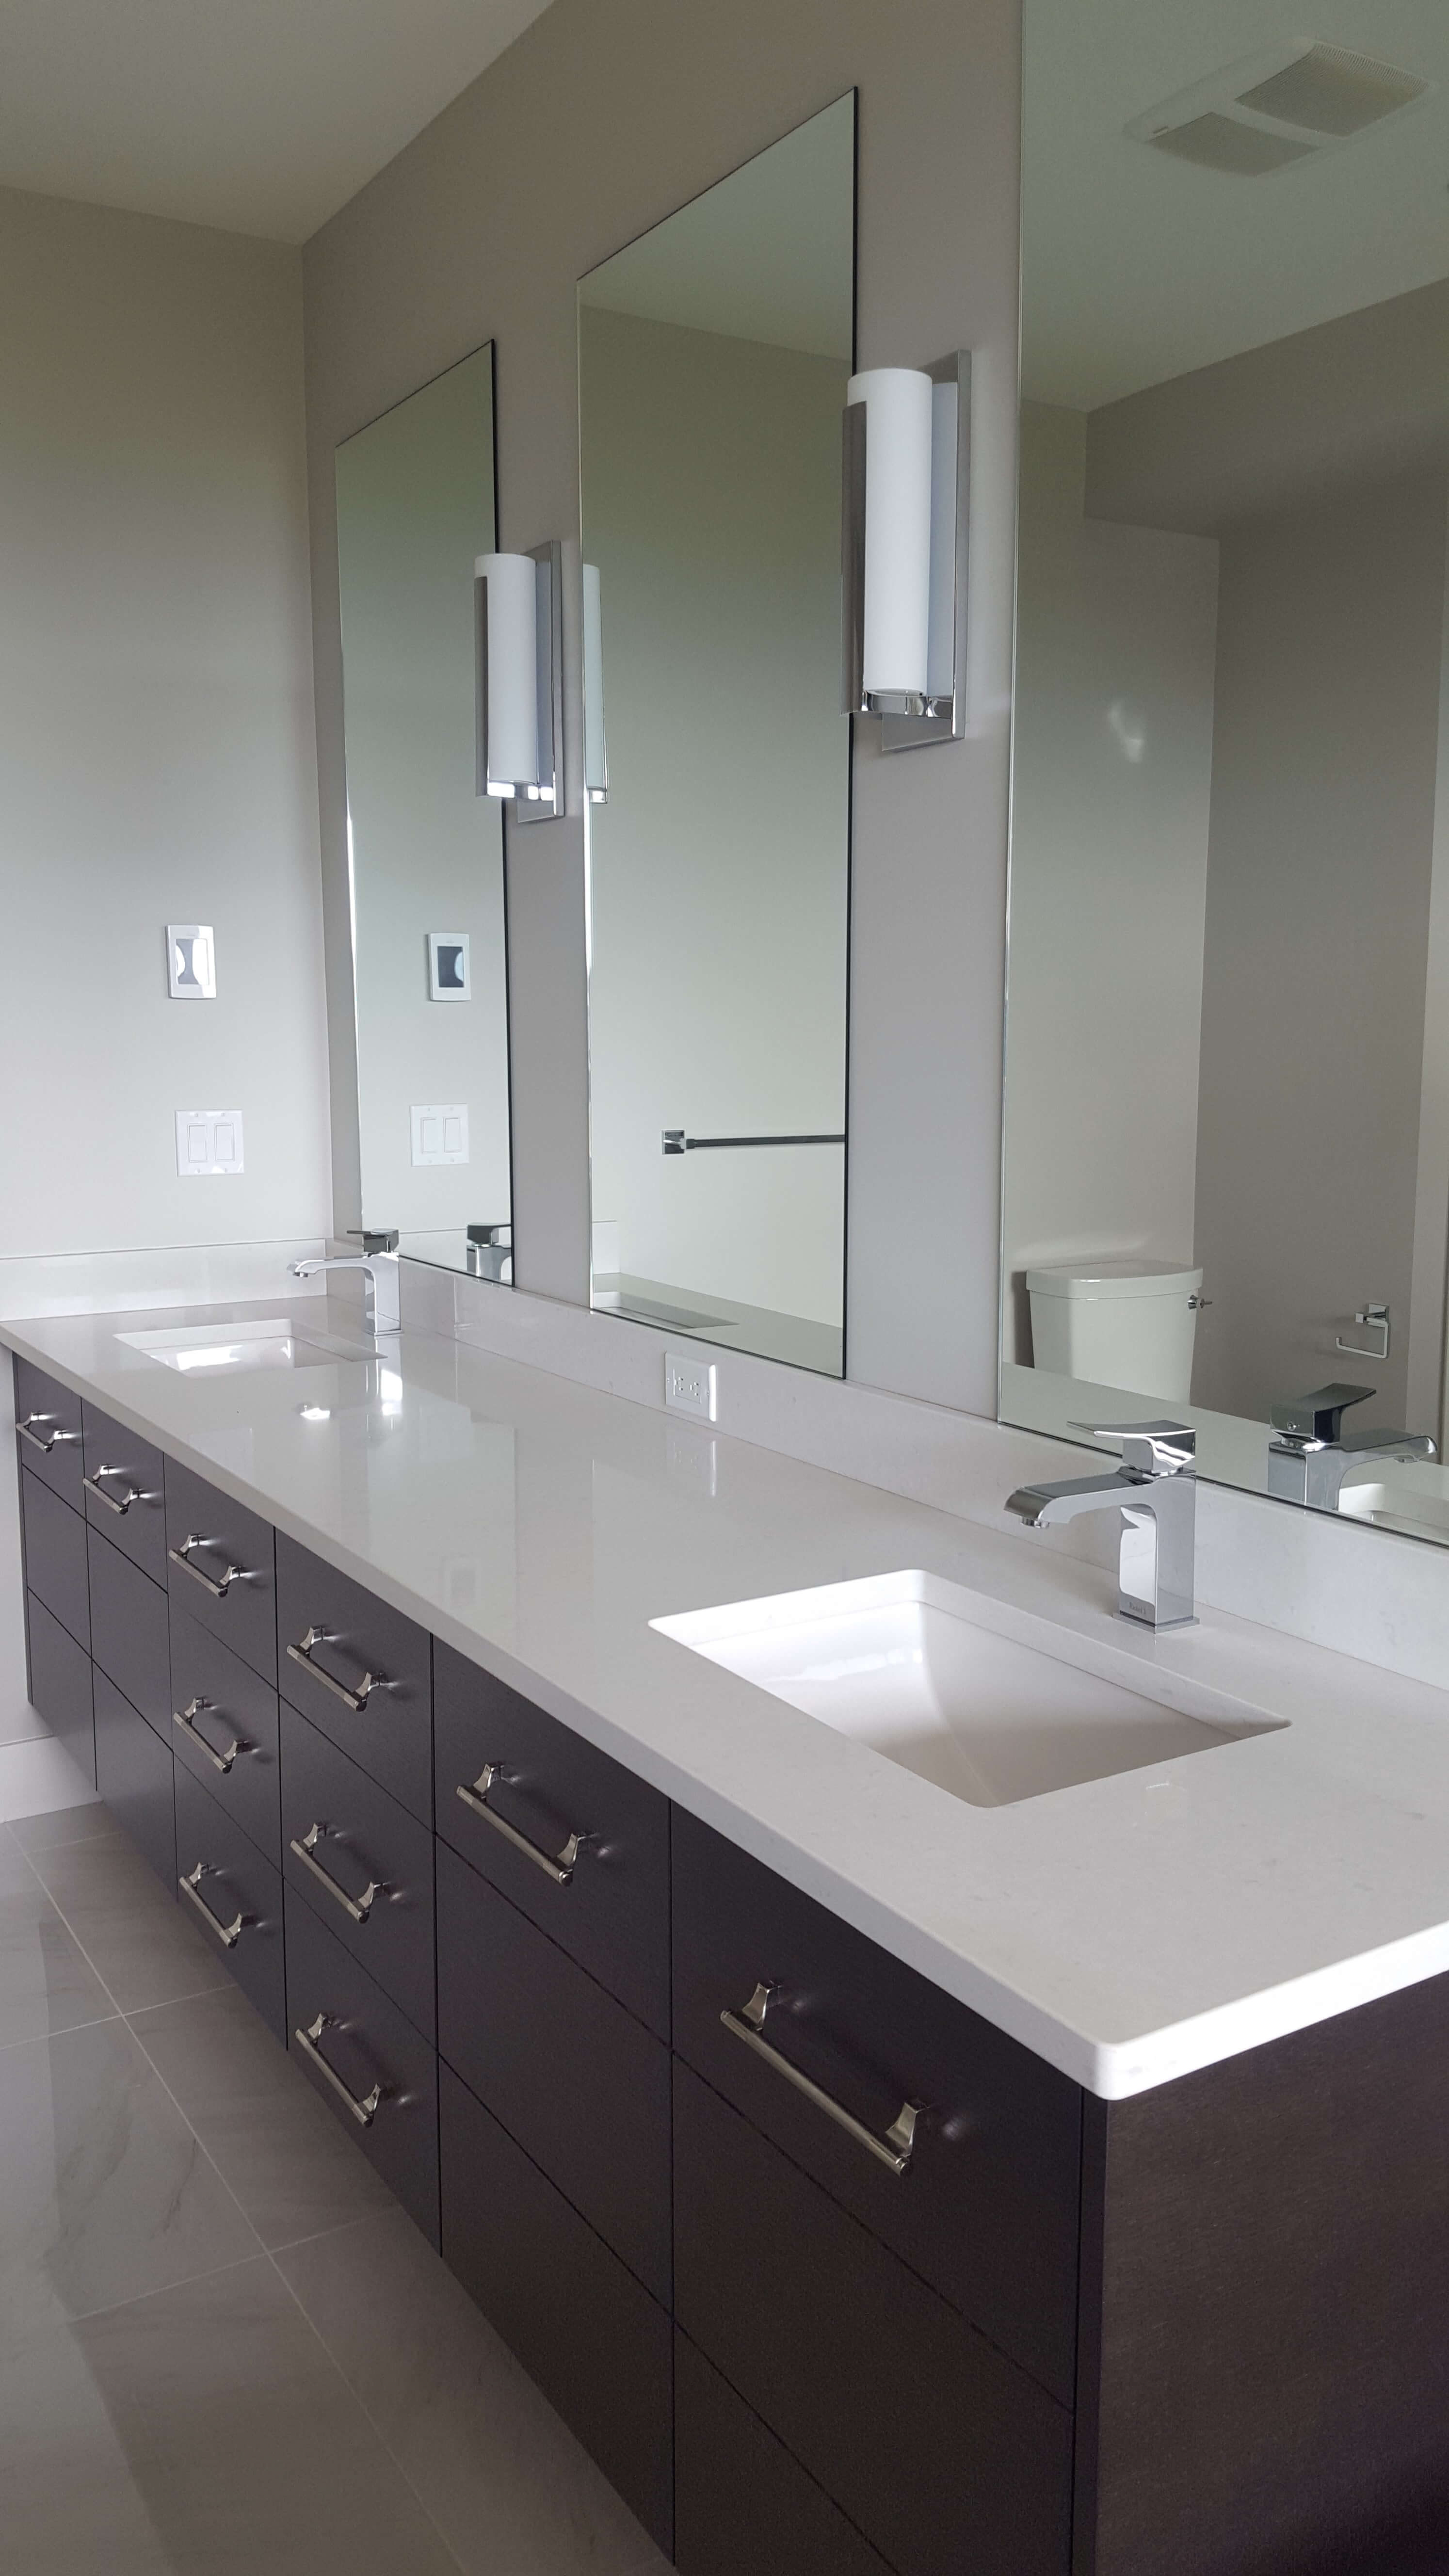 Bathroom cabinet: varieties and features of choice